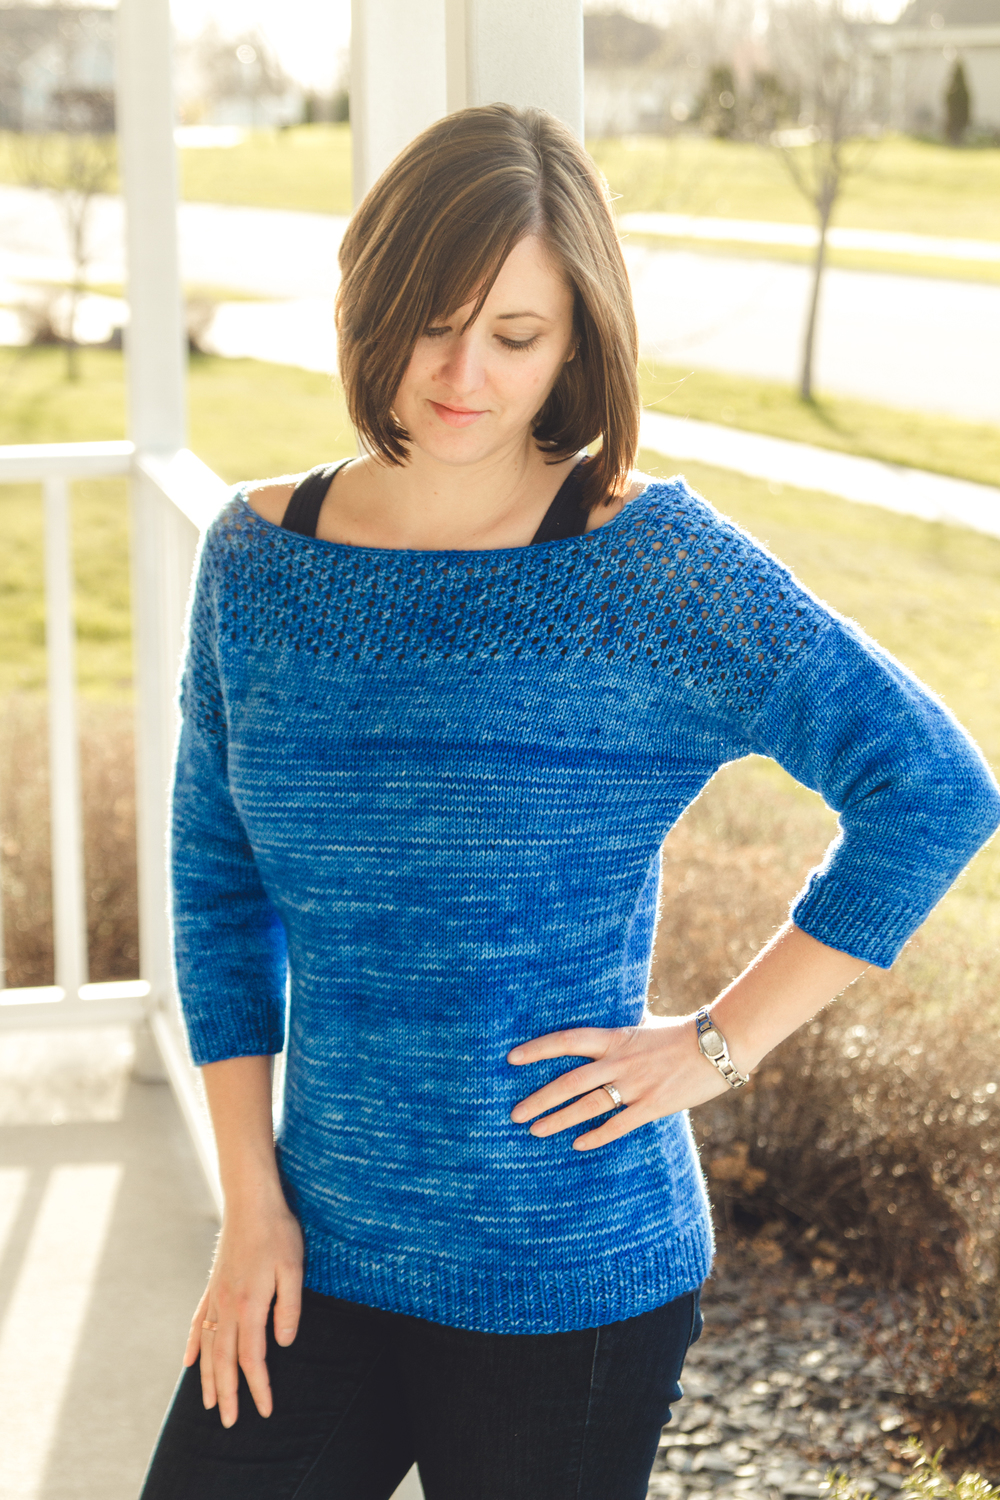 Salted, by Alicia Plummer, in Front Porch Fibers DK MCN, colorway Saphire Blue